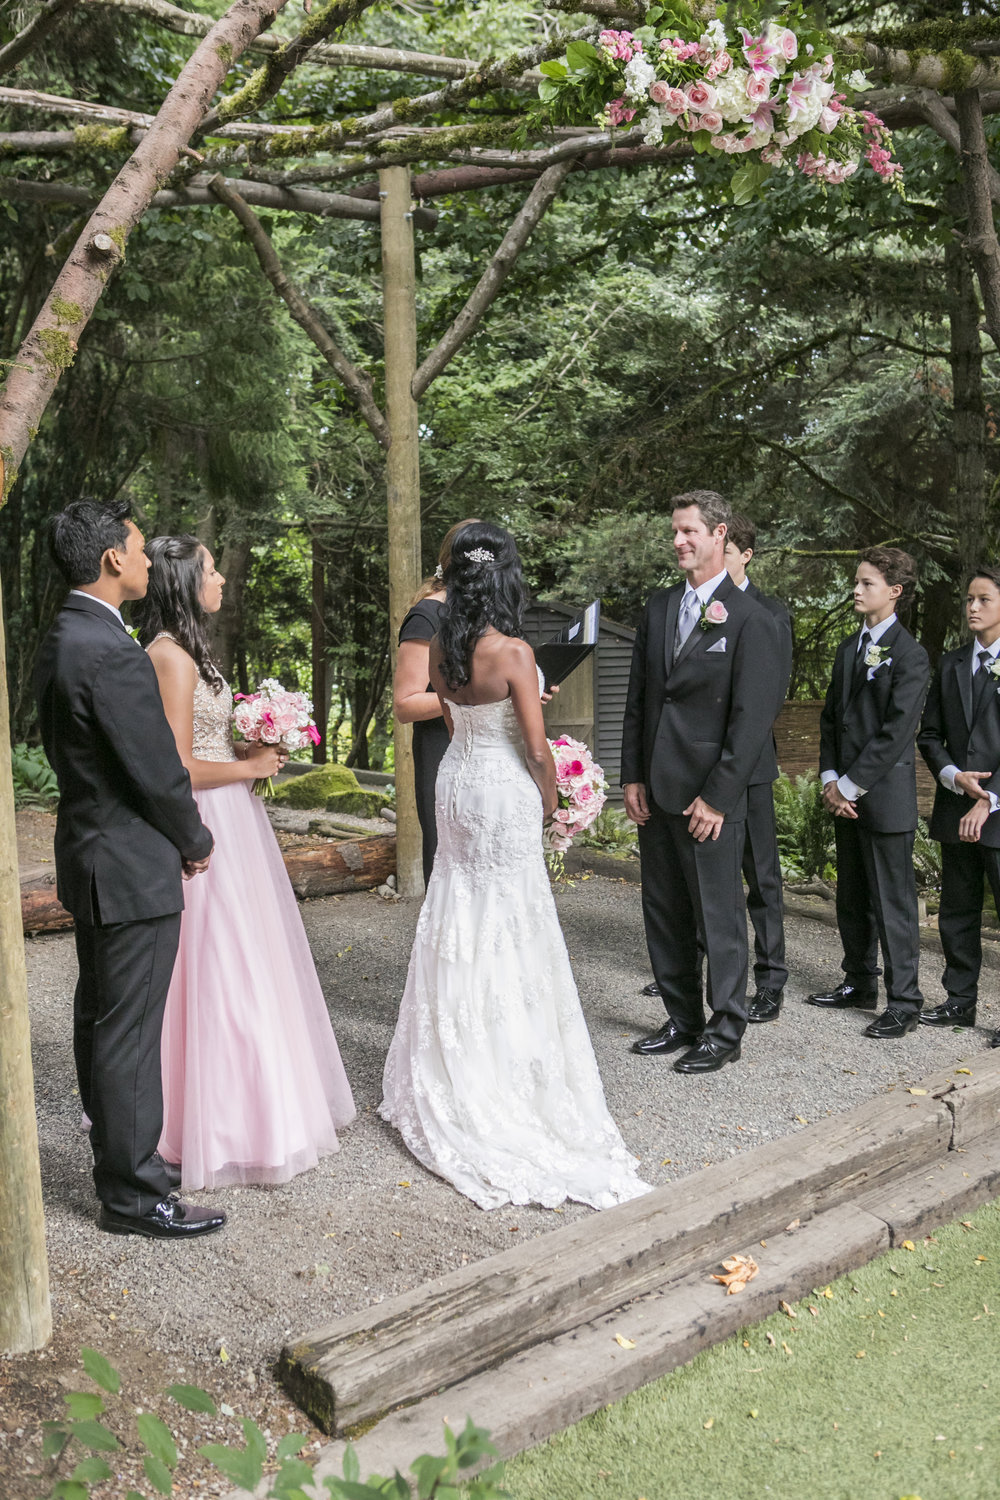 Bridalbliss.com | Seattle Wedding Planner | Washington Event Design | Tasha Owen Photography